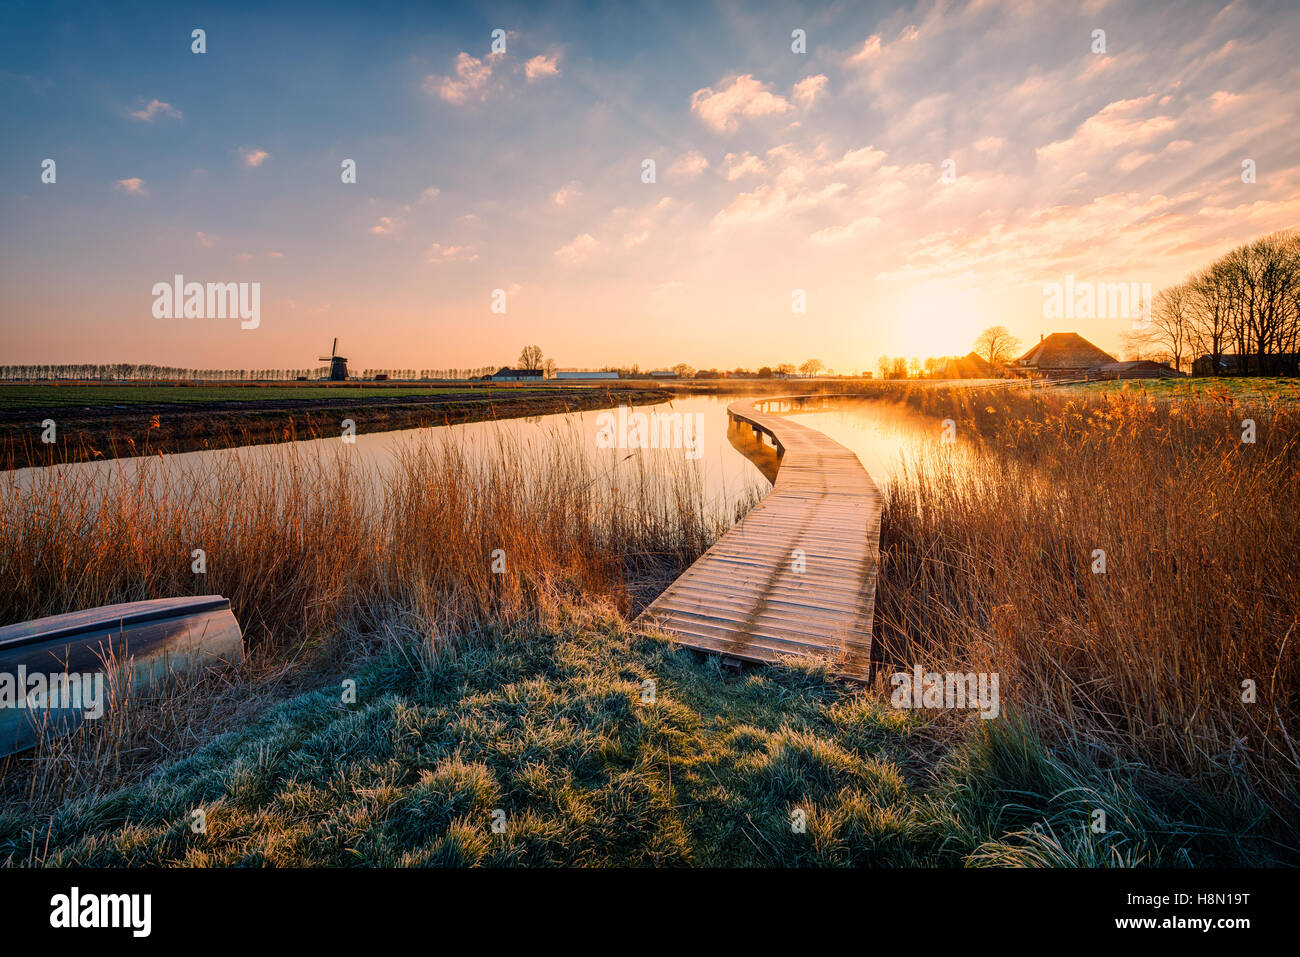 Dutch Polder Landscape at sunrise - Stock Image